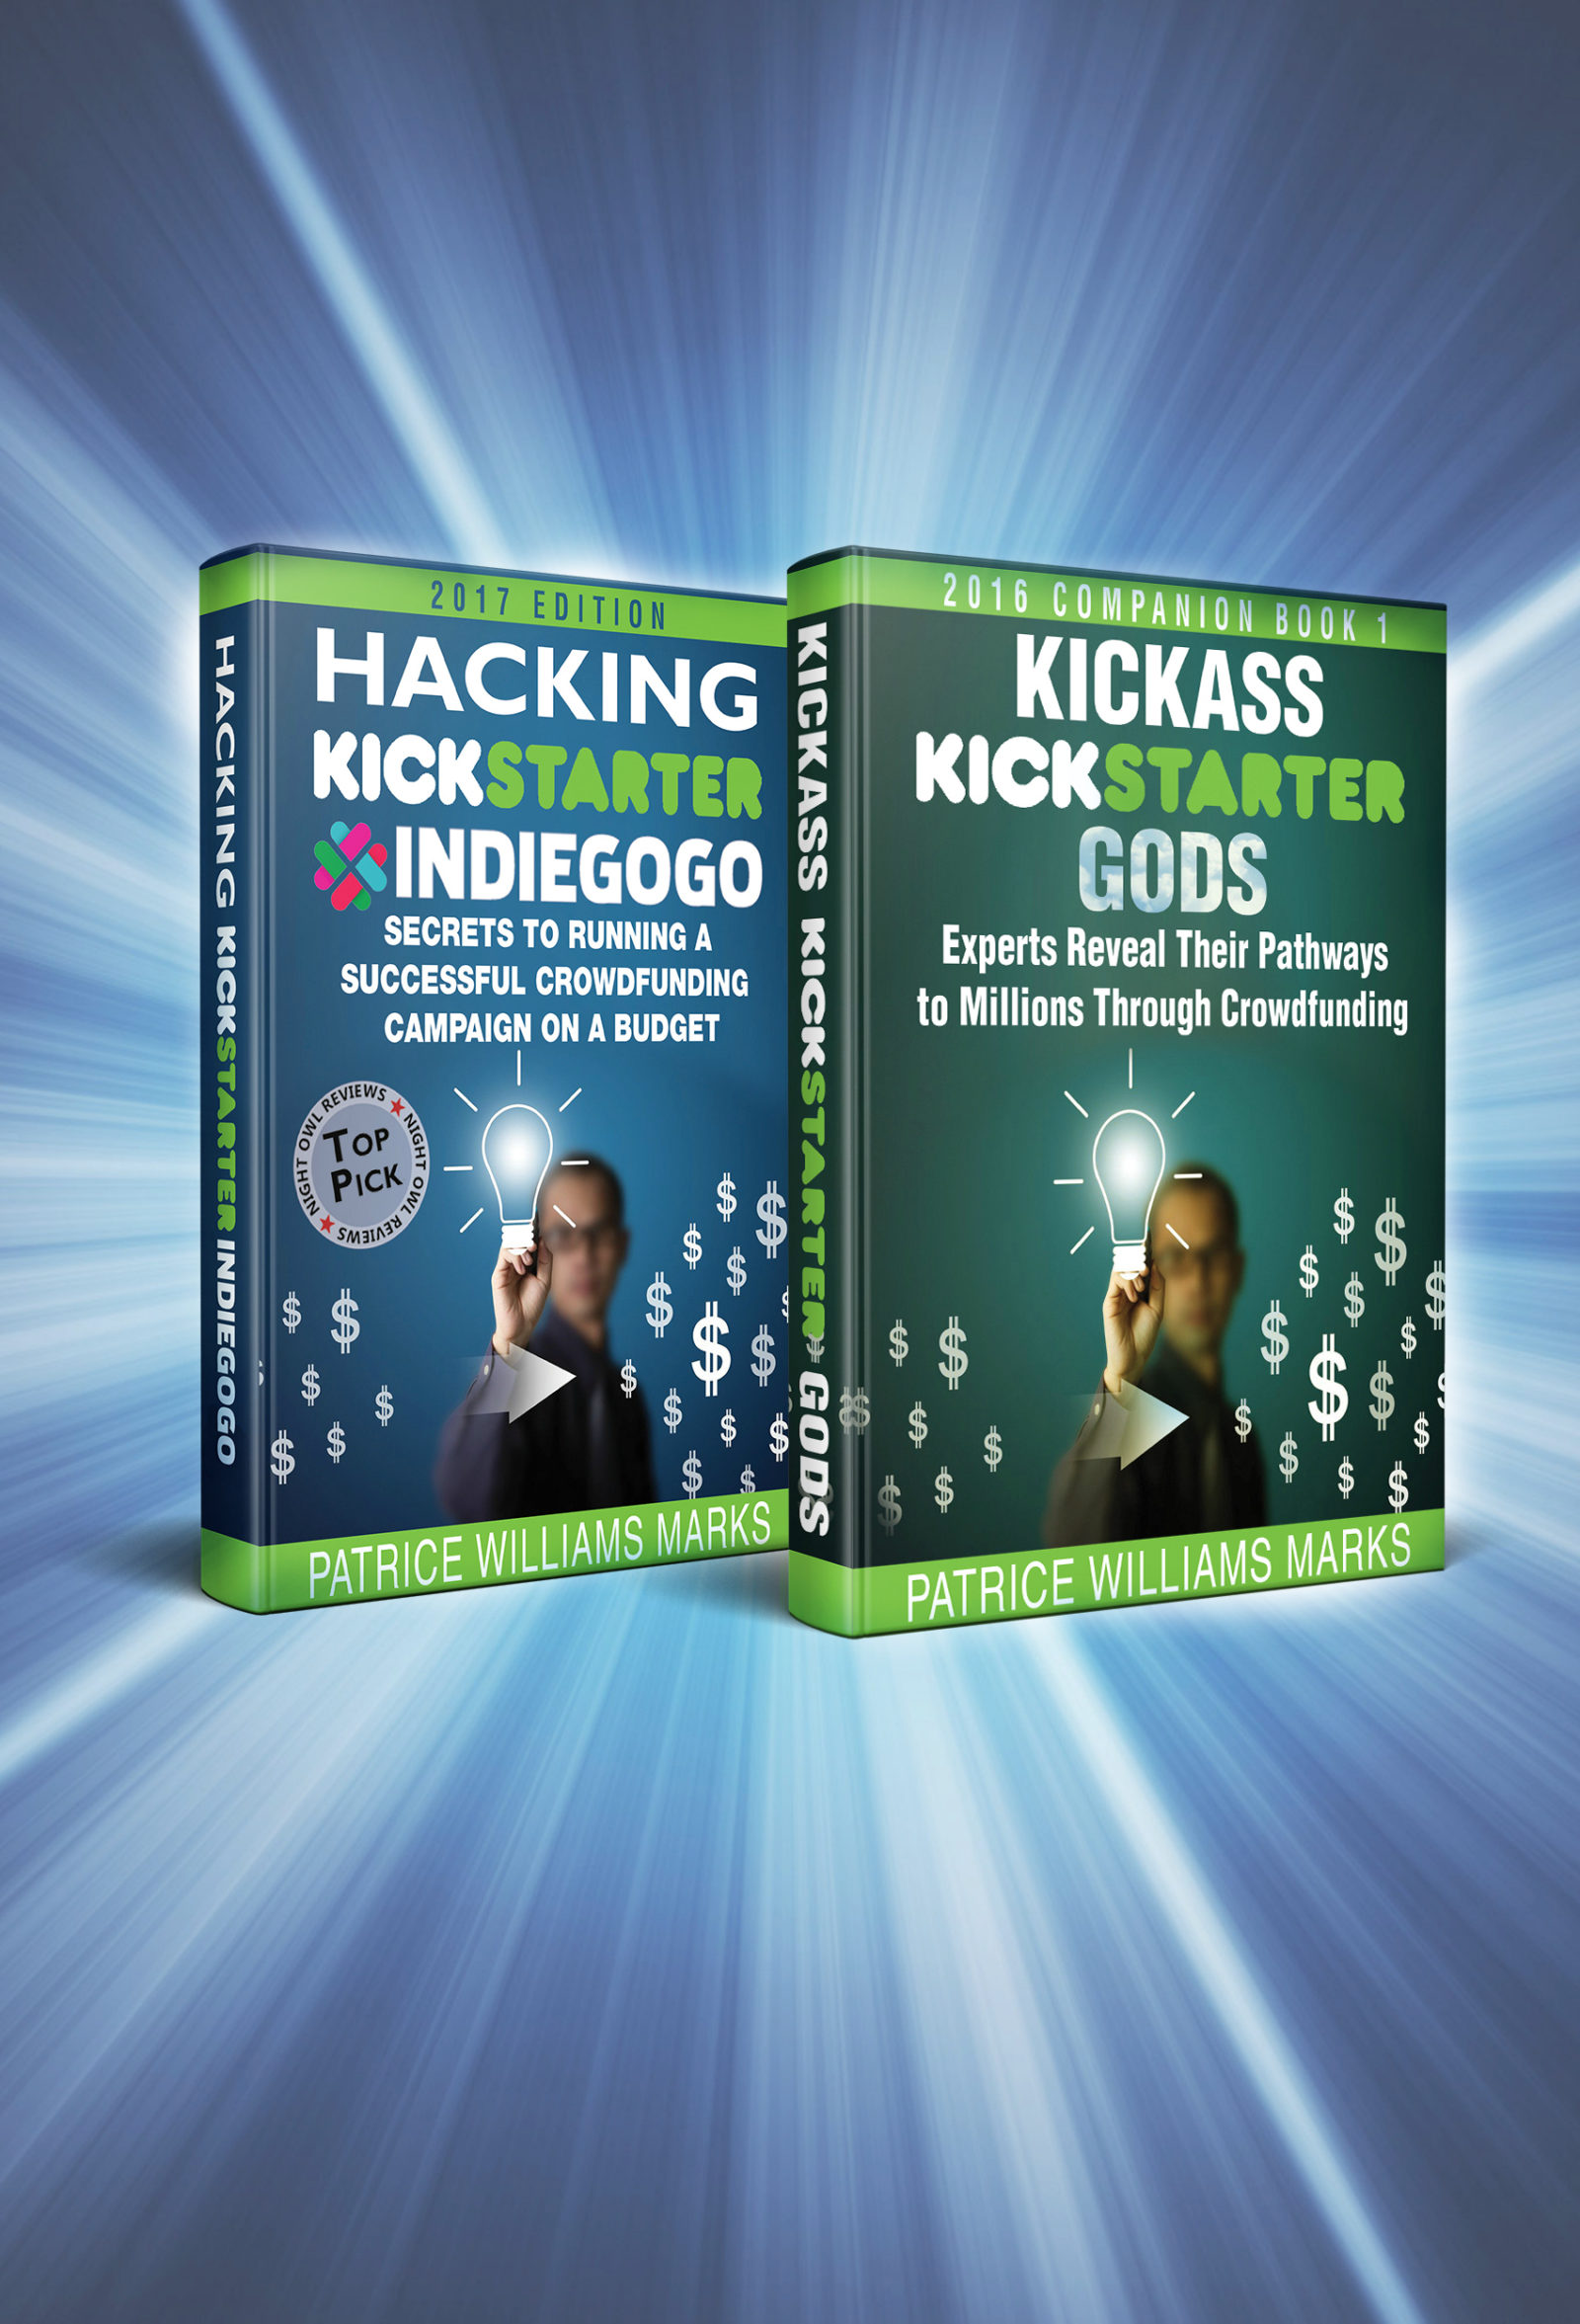 OMNIBUS-Hacking-Kickstarter-Indiegogo-Secrets-to-Running-a-Successful-Crowd-Funding-iBooks